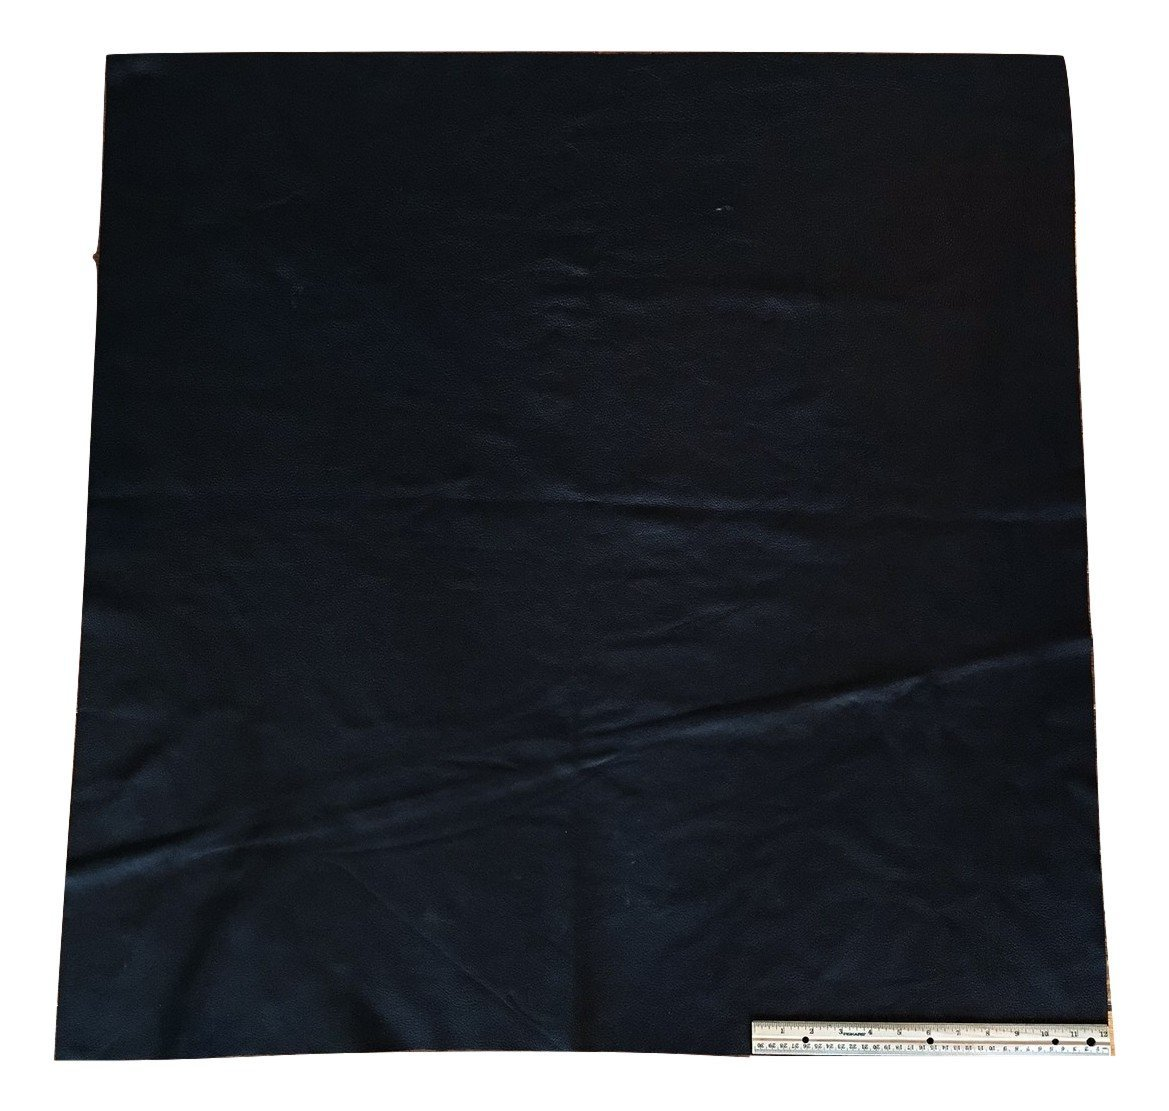 Upholstery Leather Piece Cowhide Black Light Weight; 3 feet x 3 feet, 9 square feet